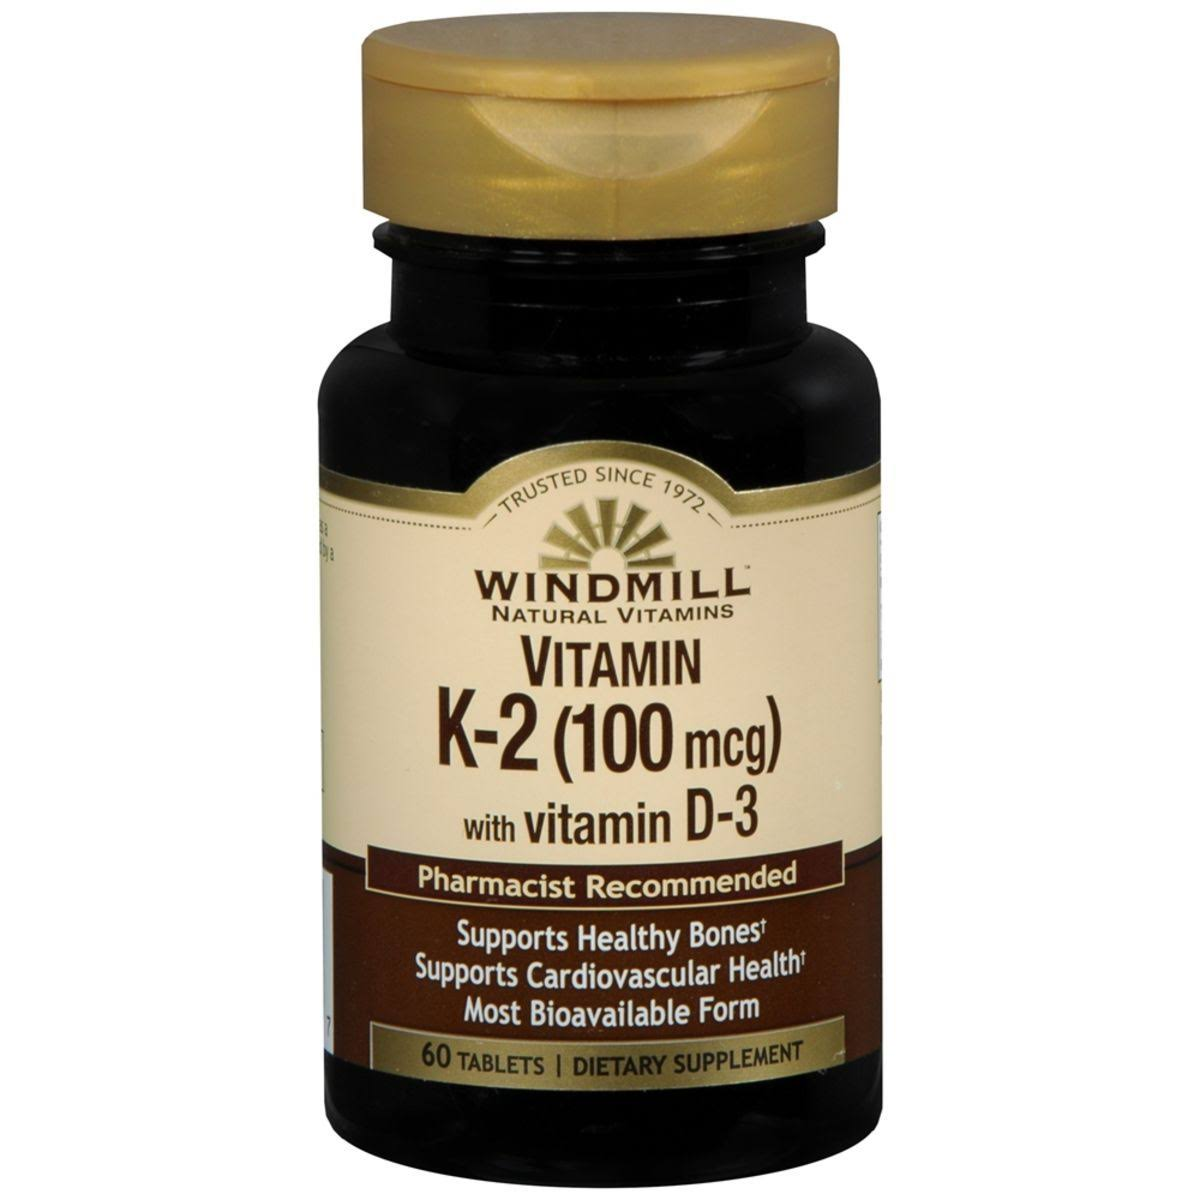 Windmill Vitamin K2 100mcg with Vitamin D3 - 60 Tablets